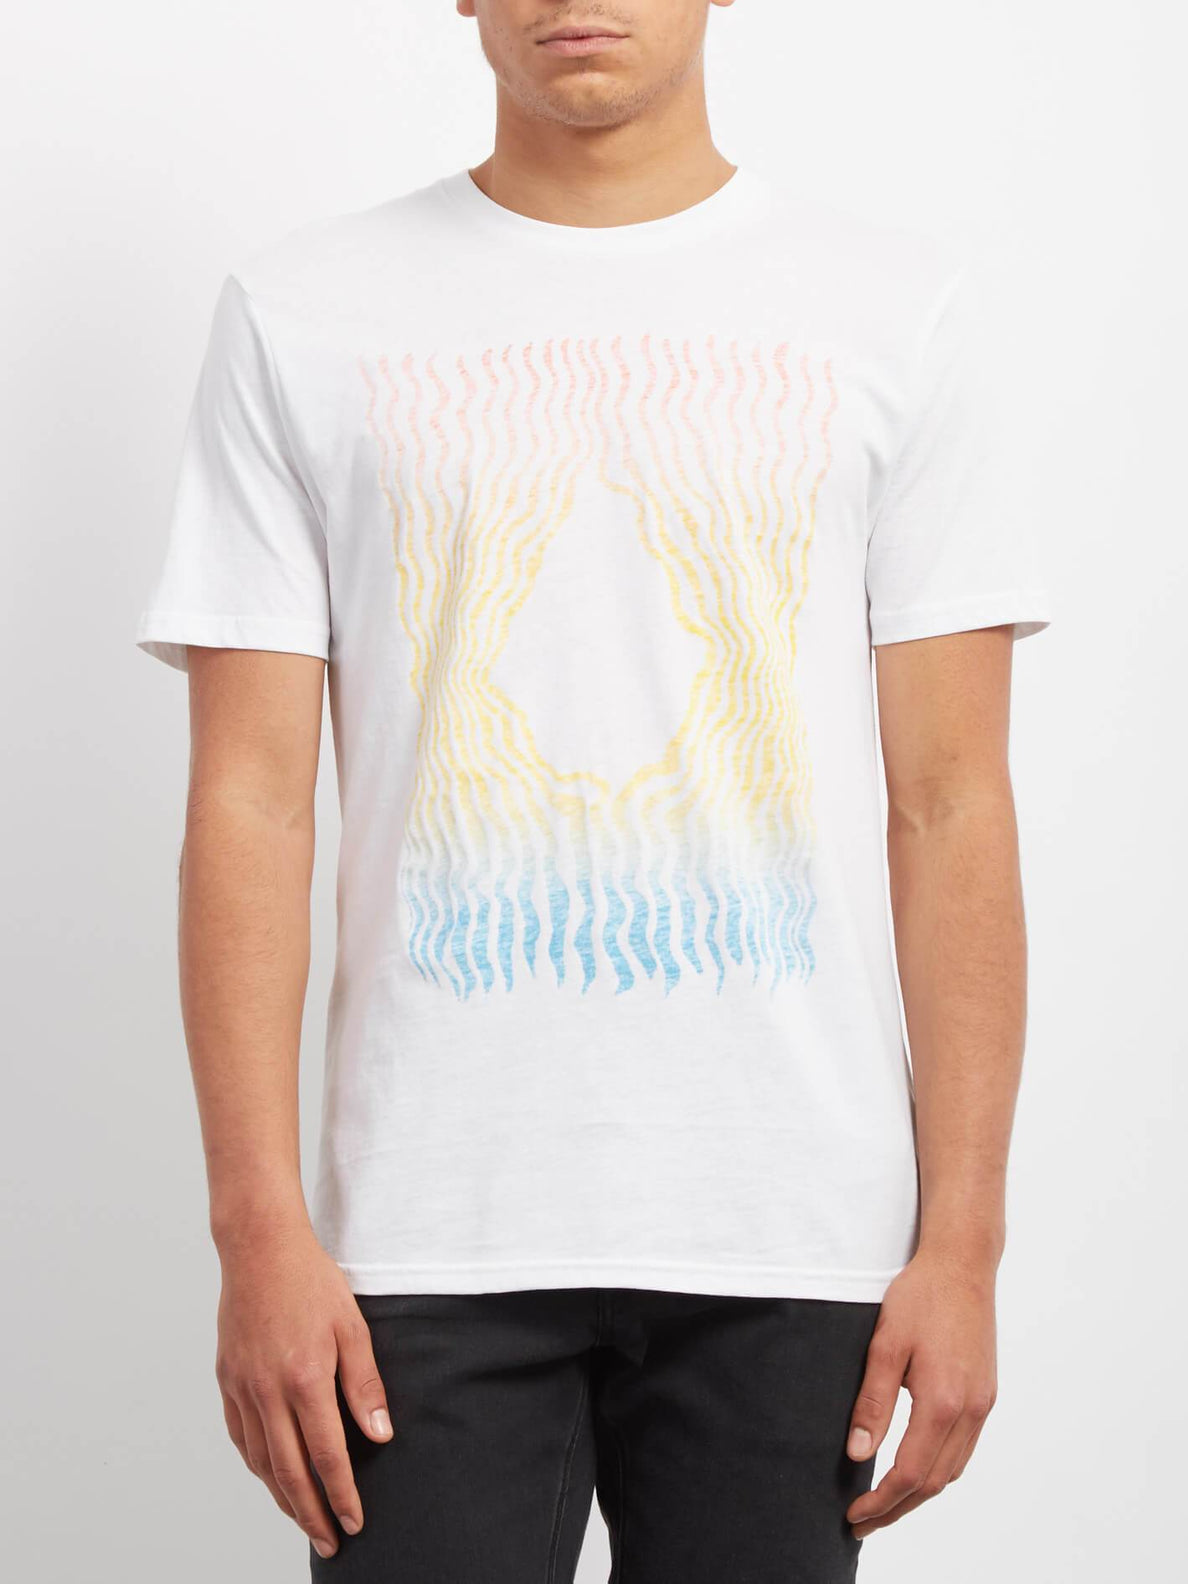 Wiggly T-shirt - White